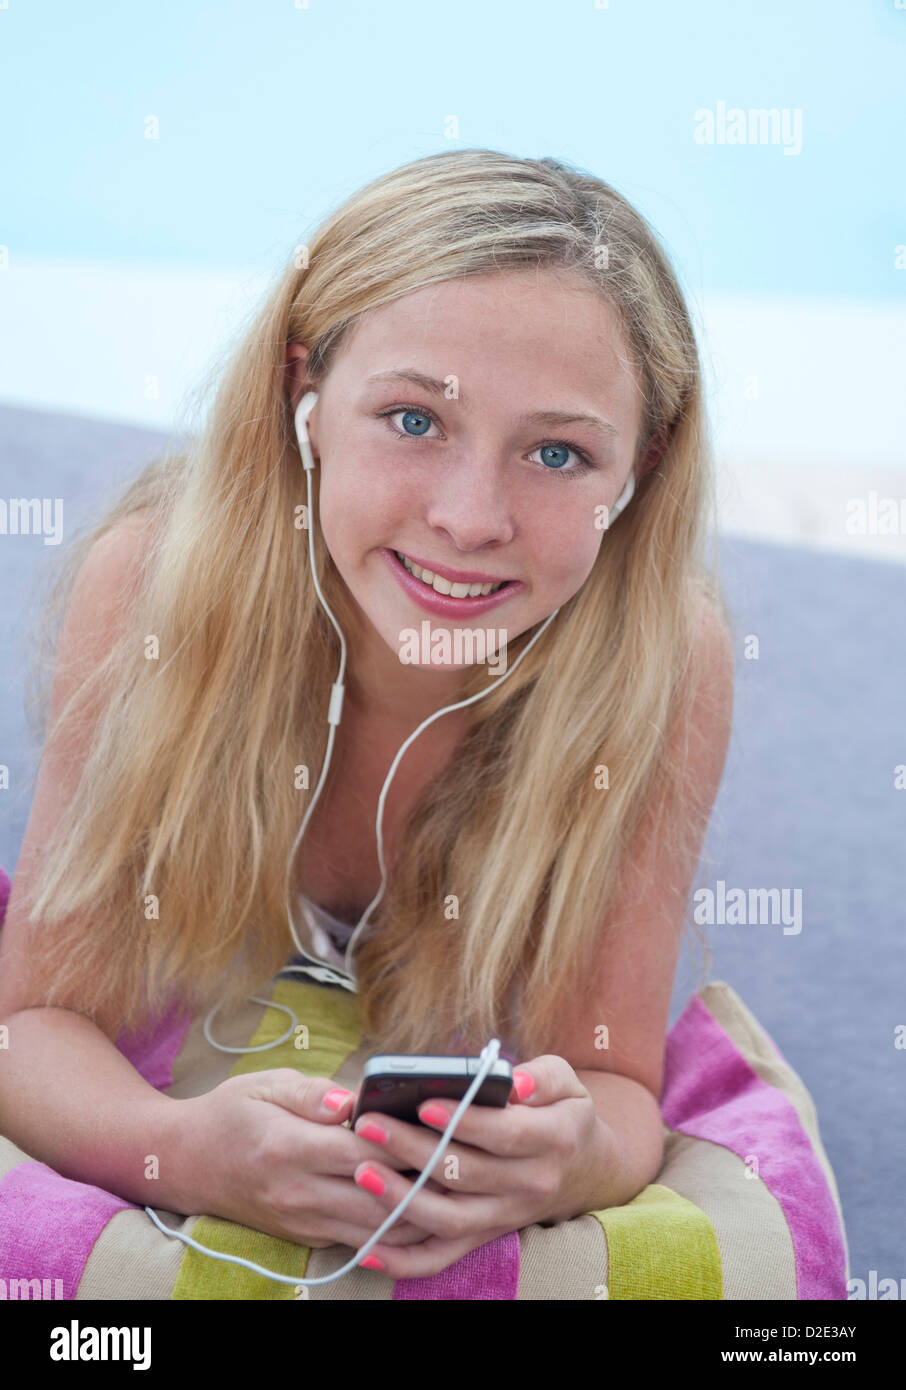 Attractive smiling 13 years old teenage girl in poolside holiday environment using  Apple iPhone smartphone wearing - Stock Image